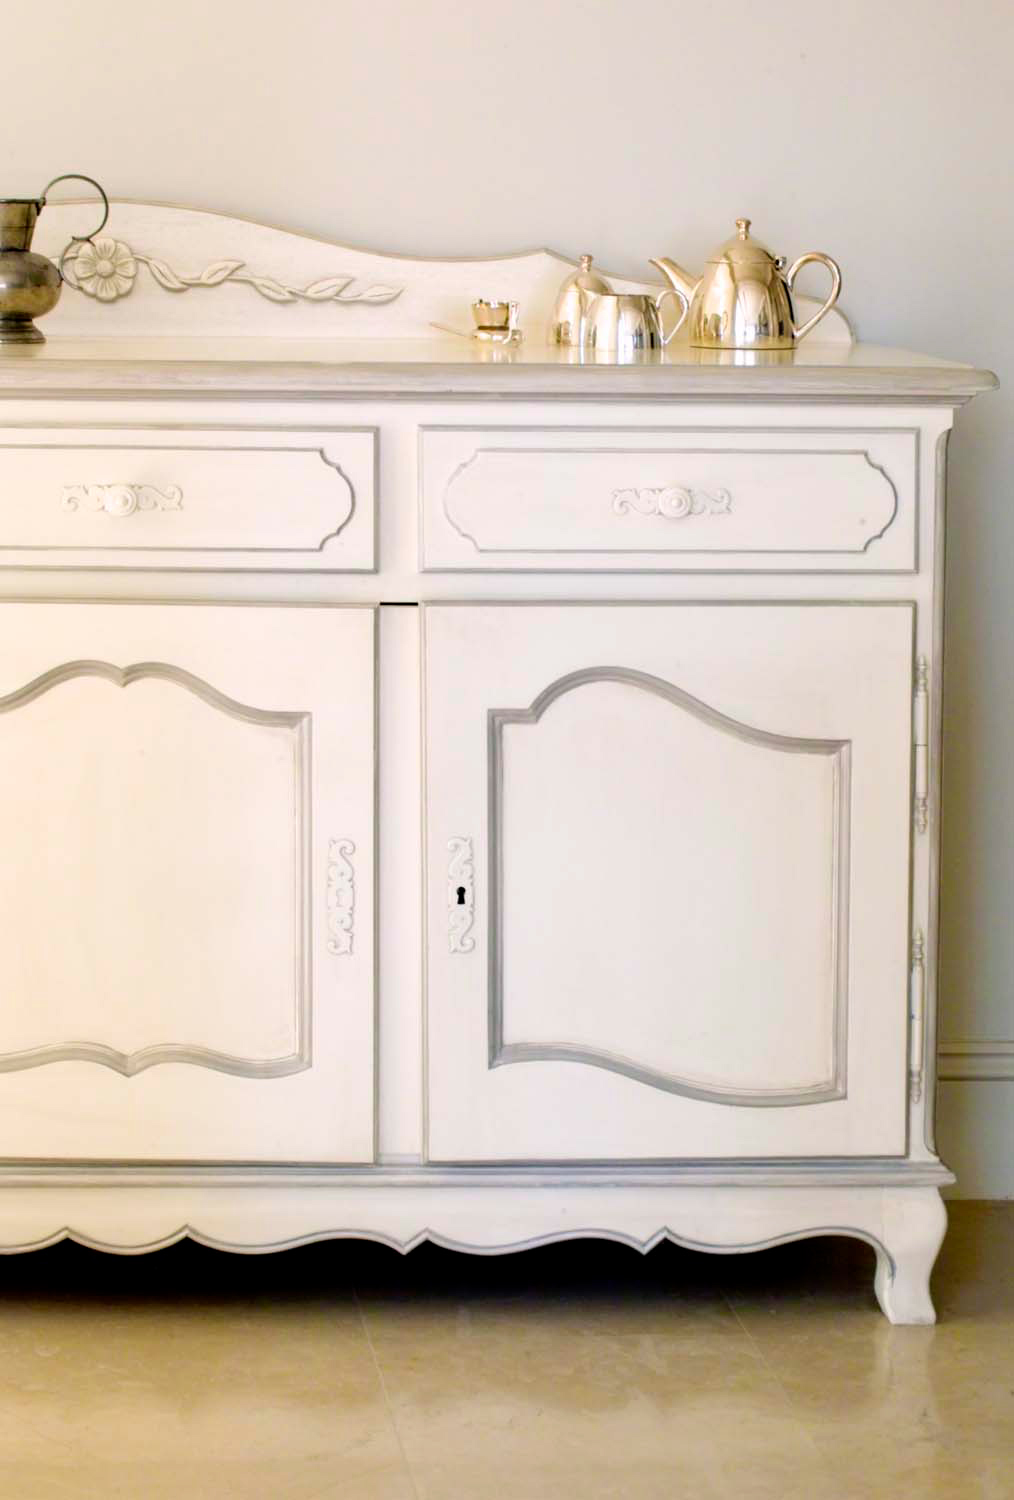 12 French classical and provincial furniture painted finishes